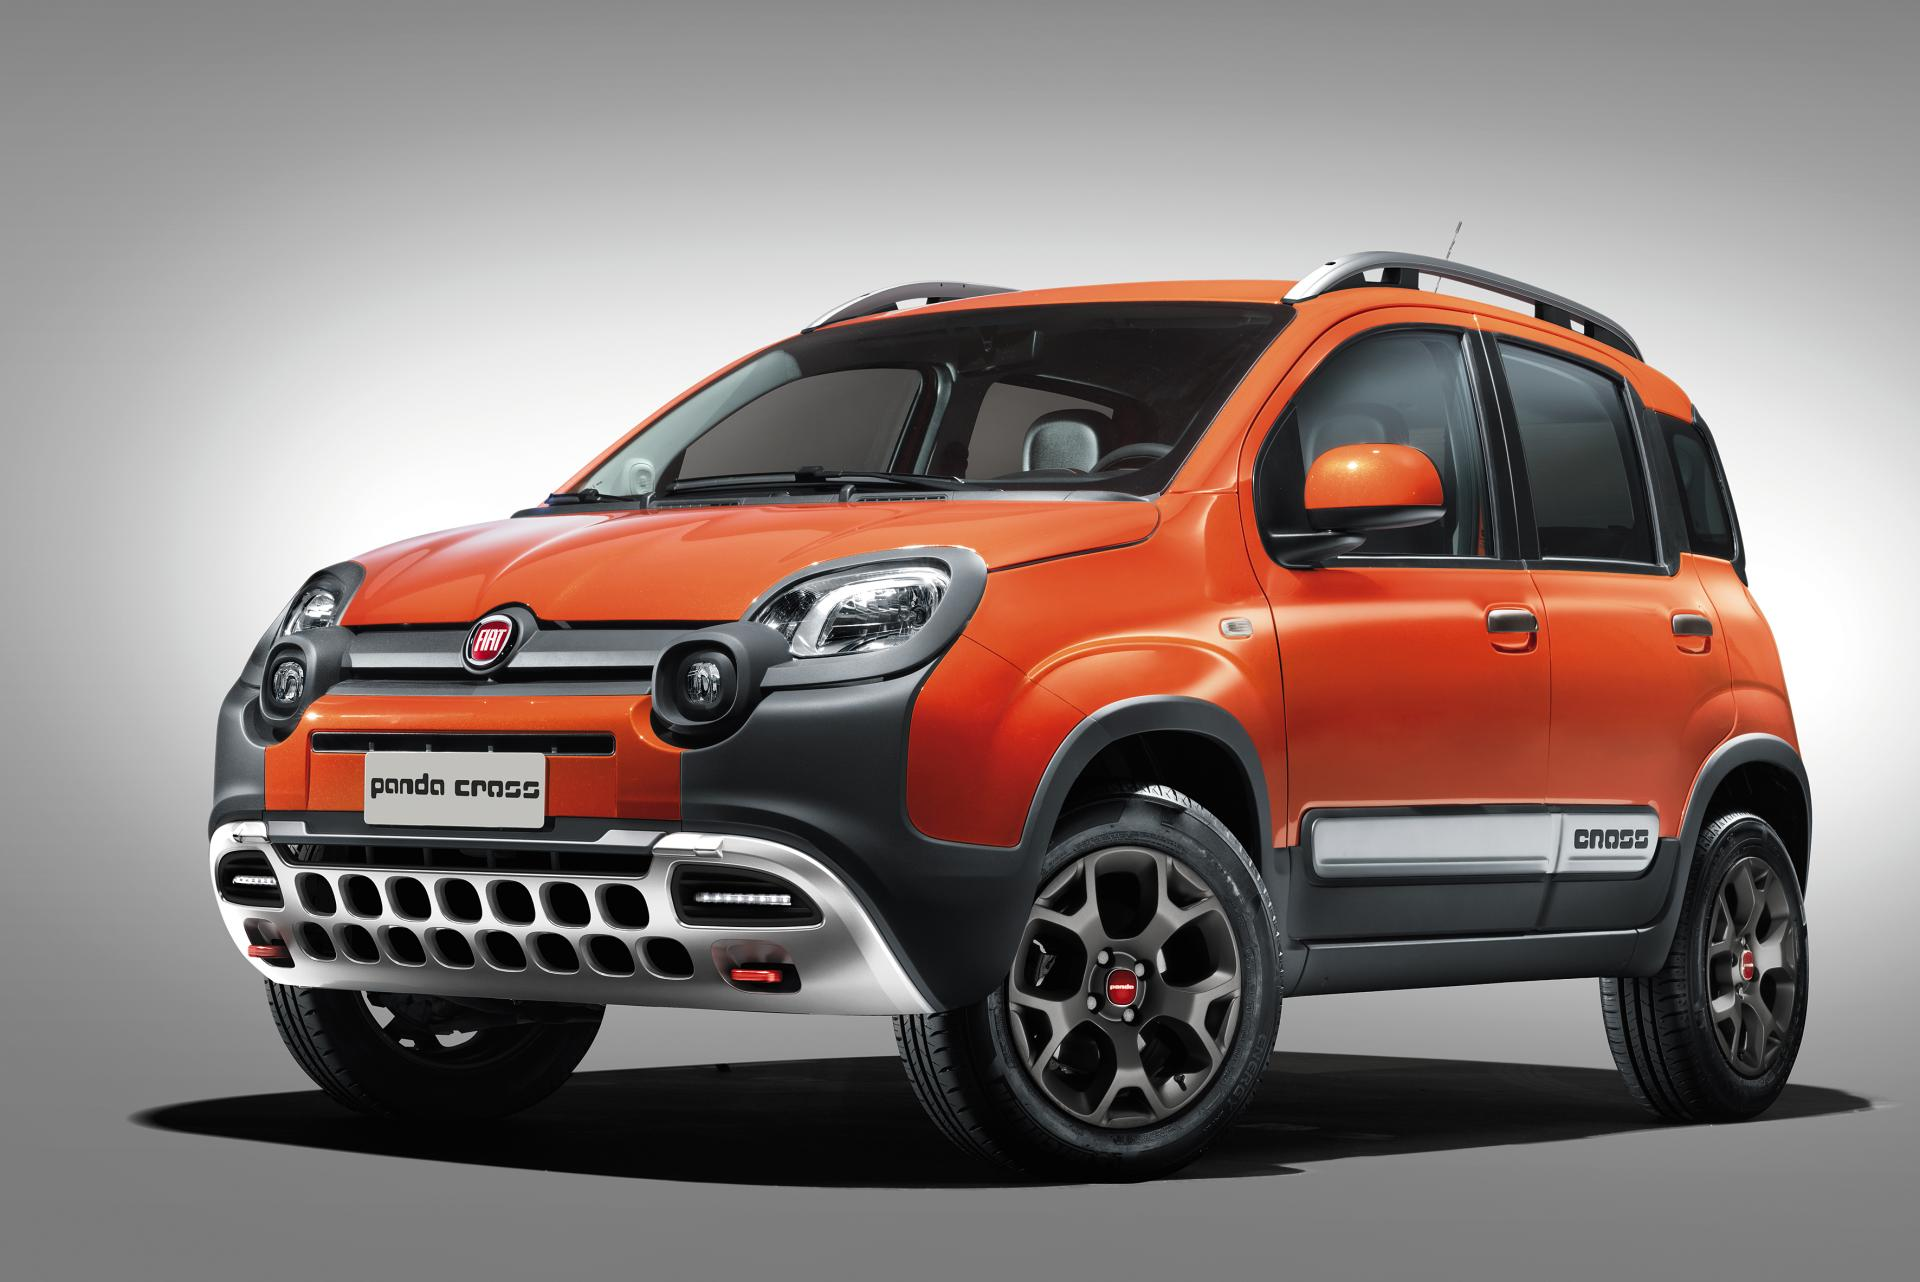 2014 fiat panda cross technical specifications and data. Black Bedroom Furniture Sets. Home Design Ideas